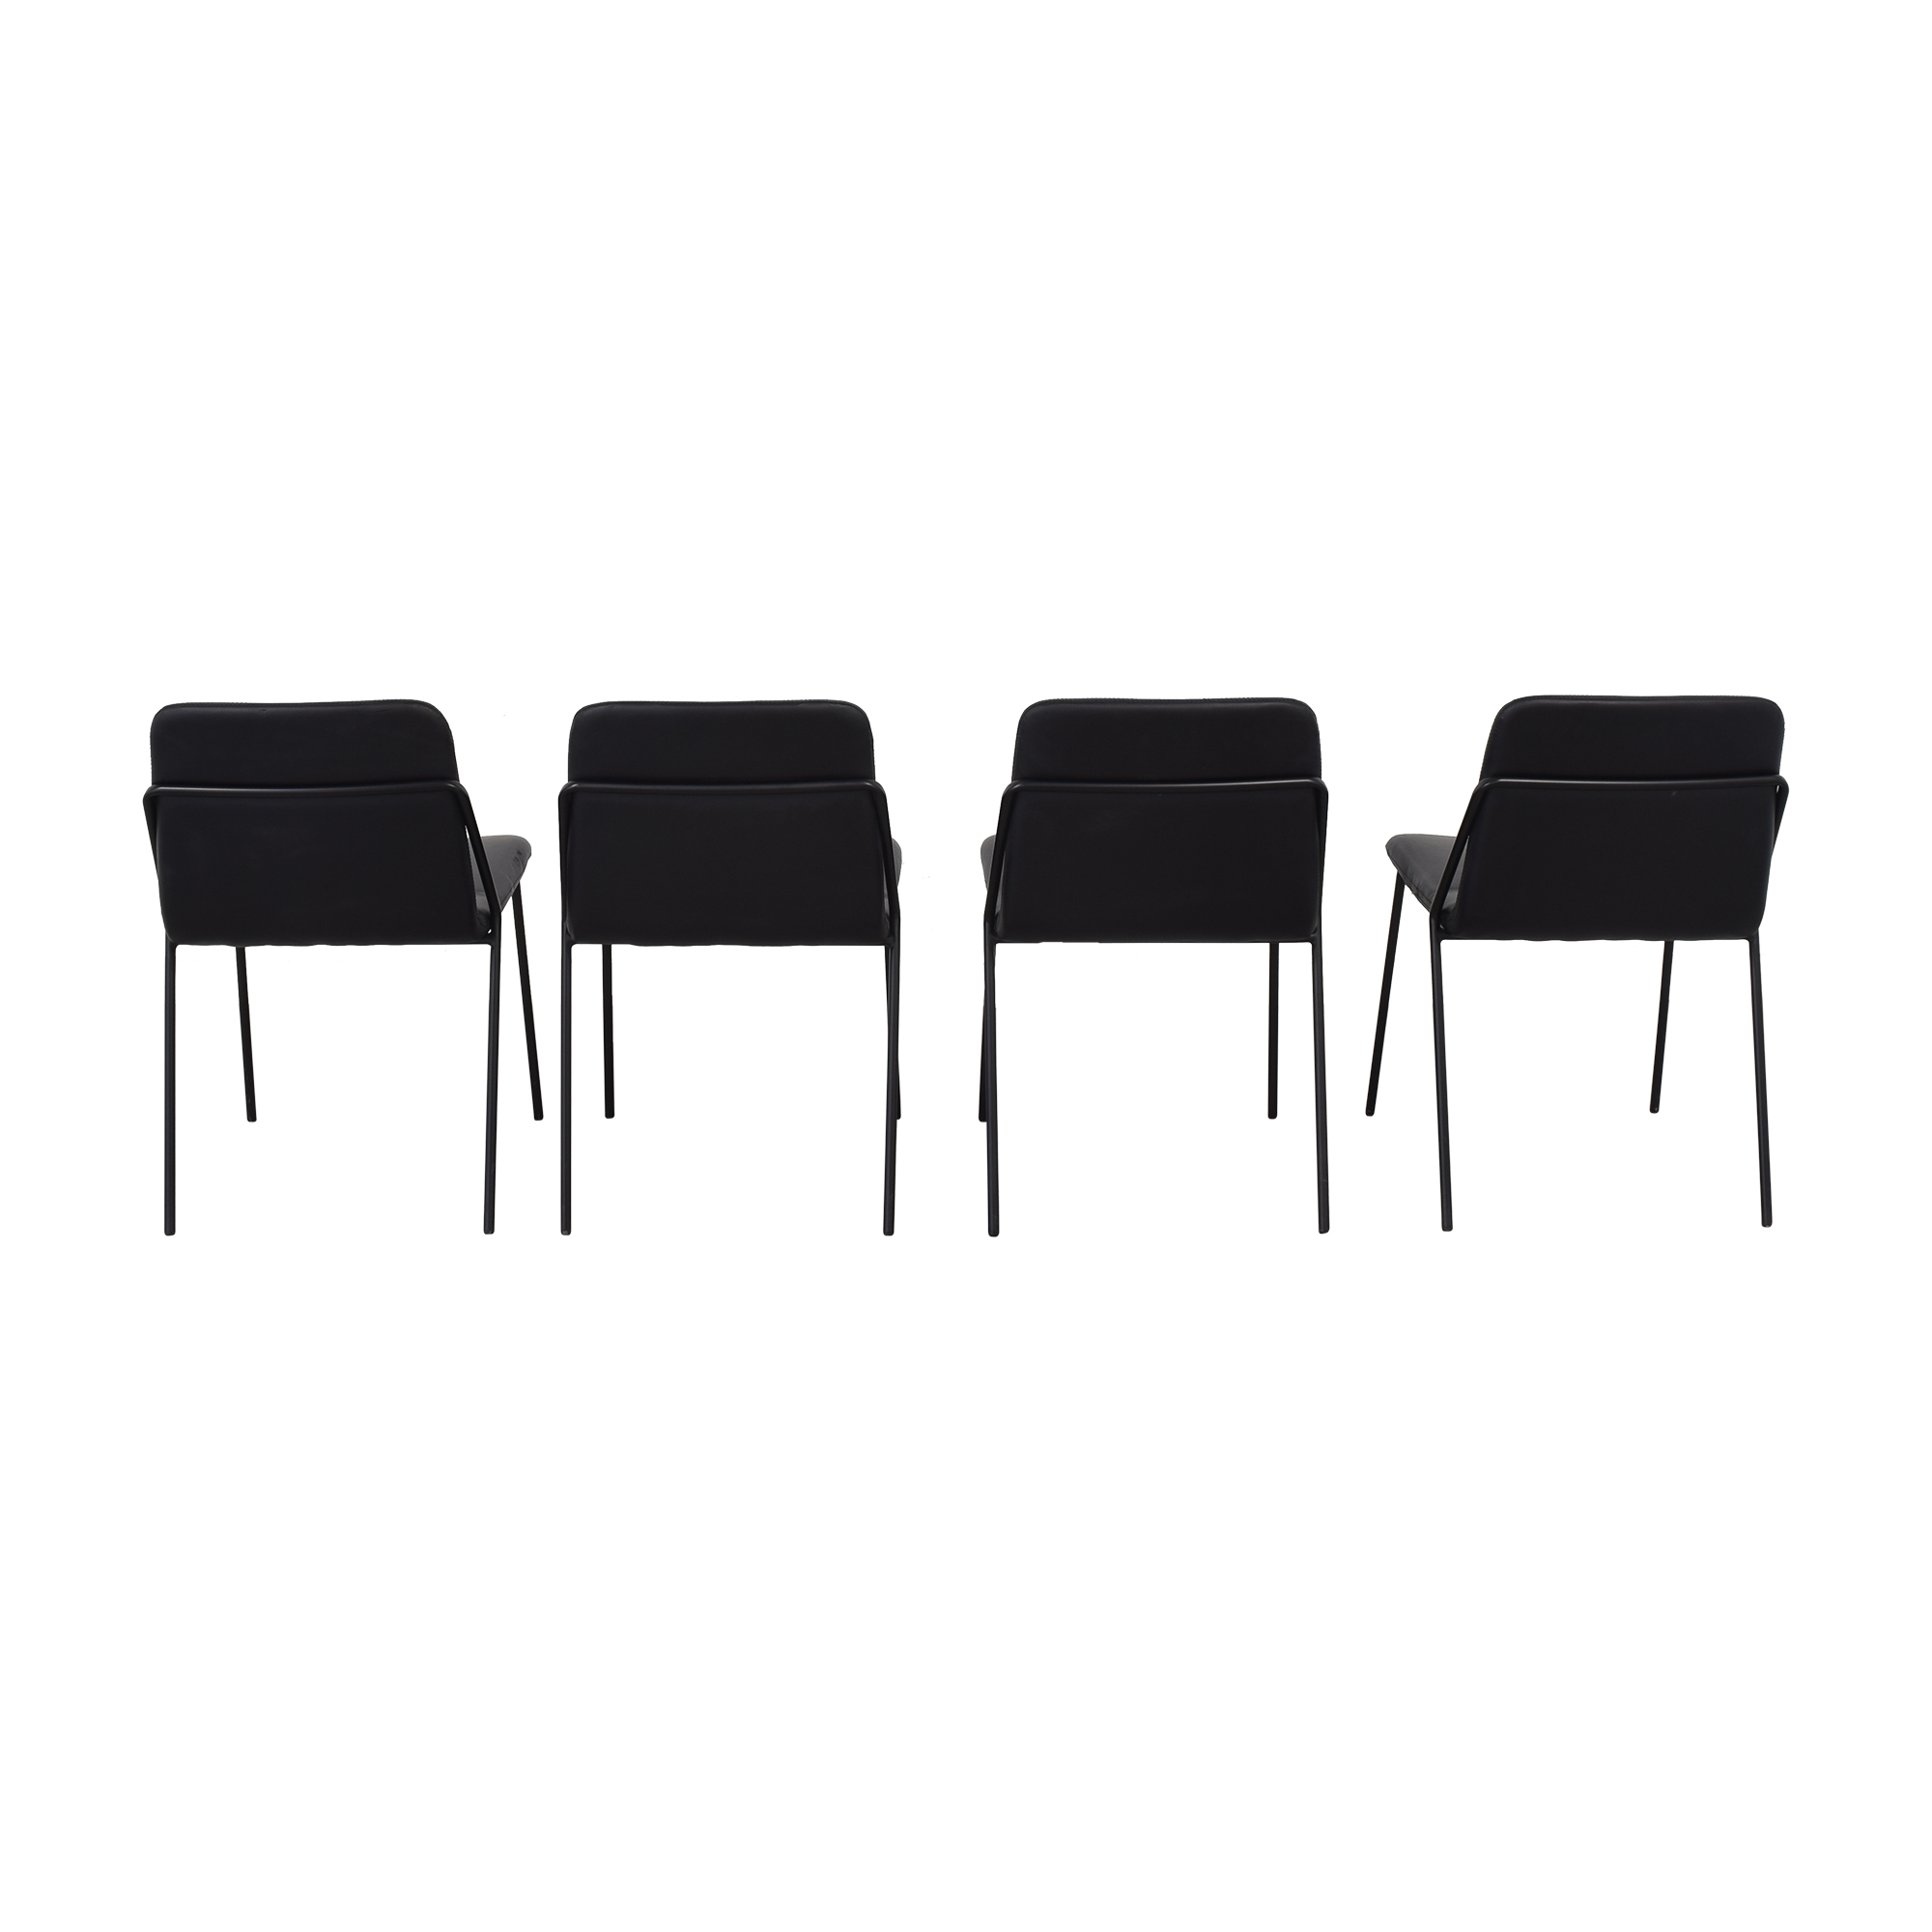 m.a.d. m.a.d. Sling Upholstered Leather Chairs black